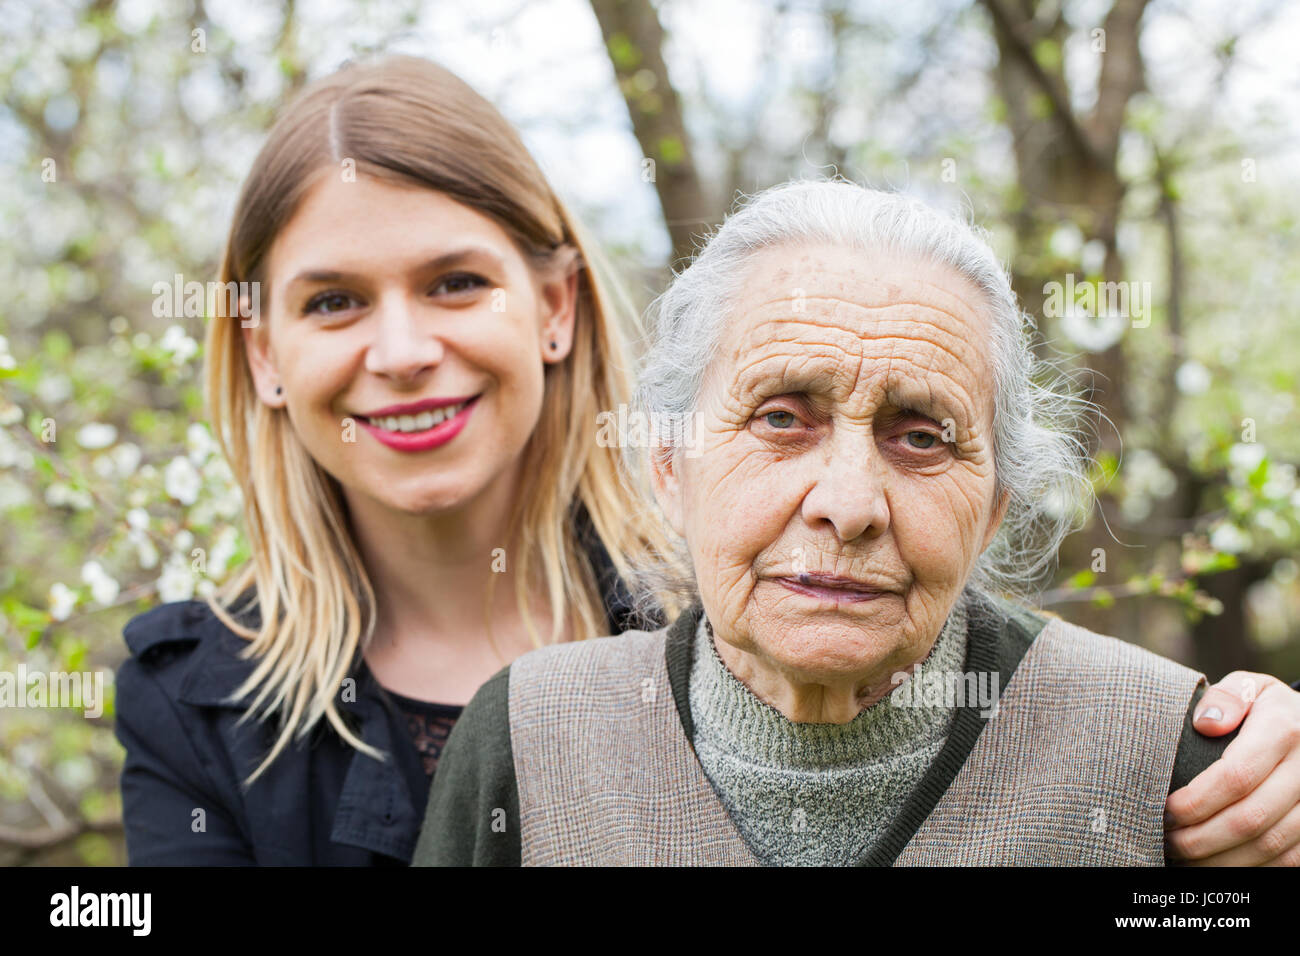 Portrait of a sick elderly woman with her young carer in the park - Stock Image